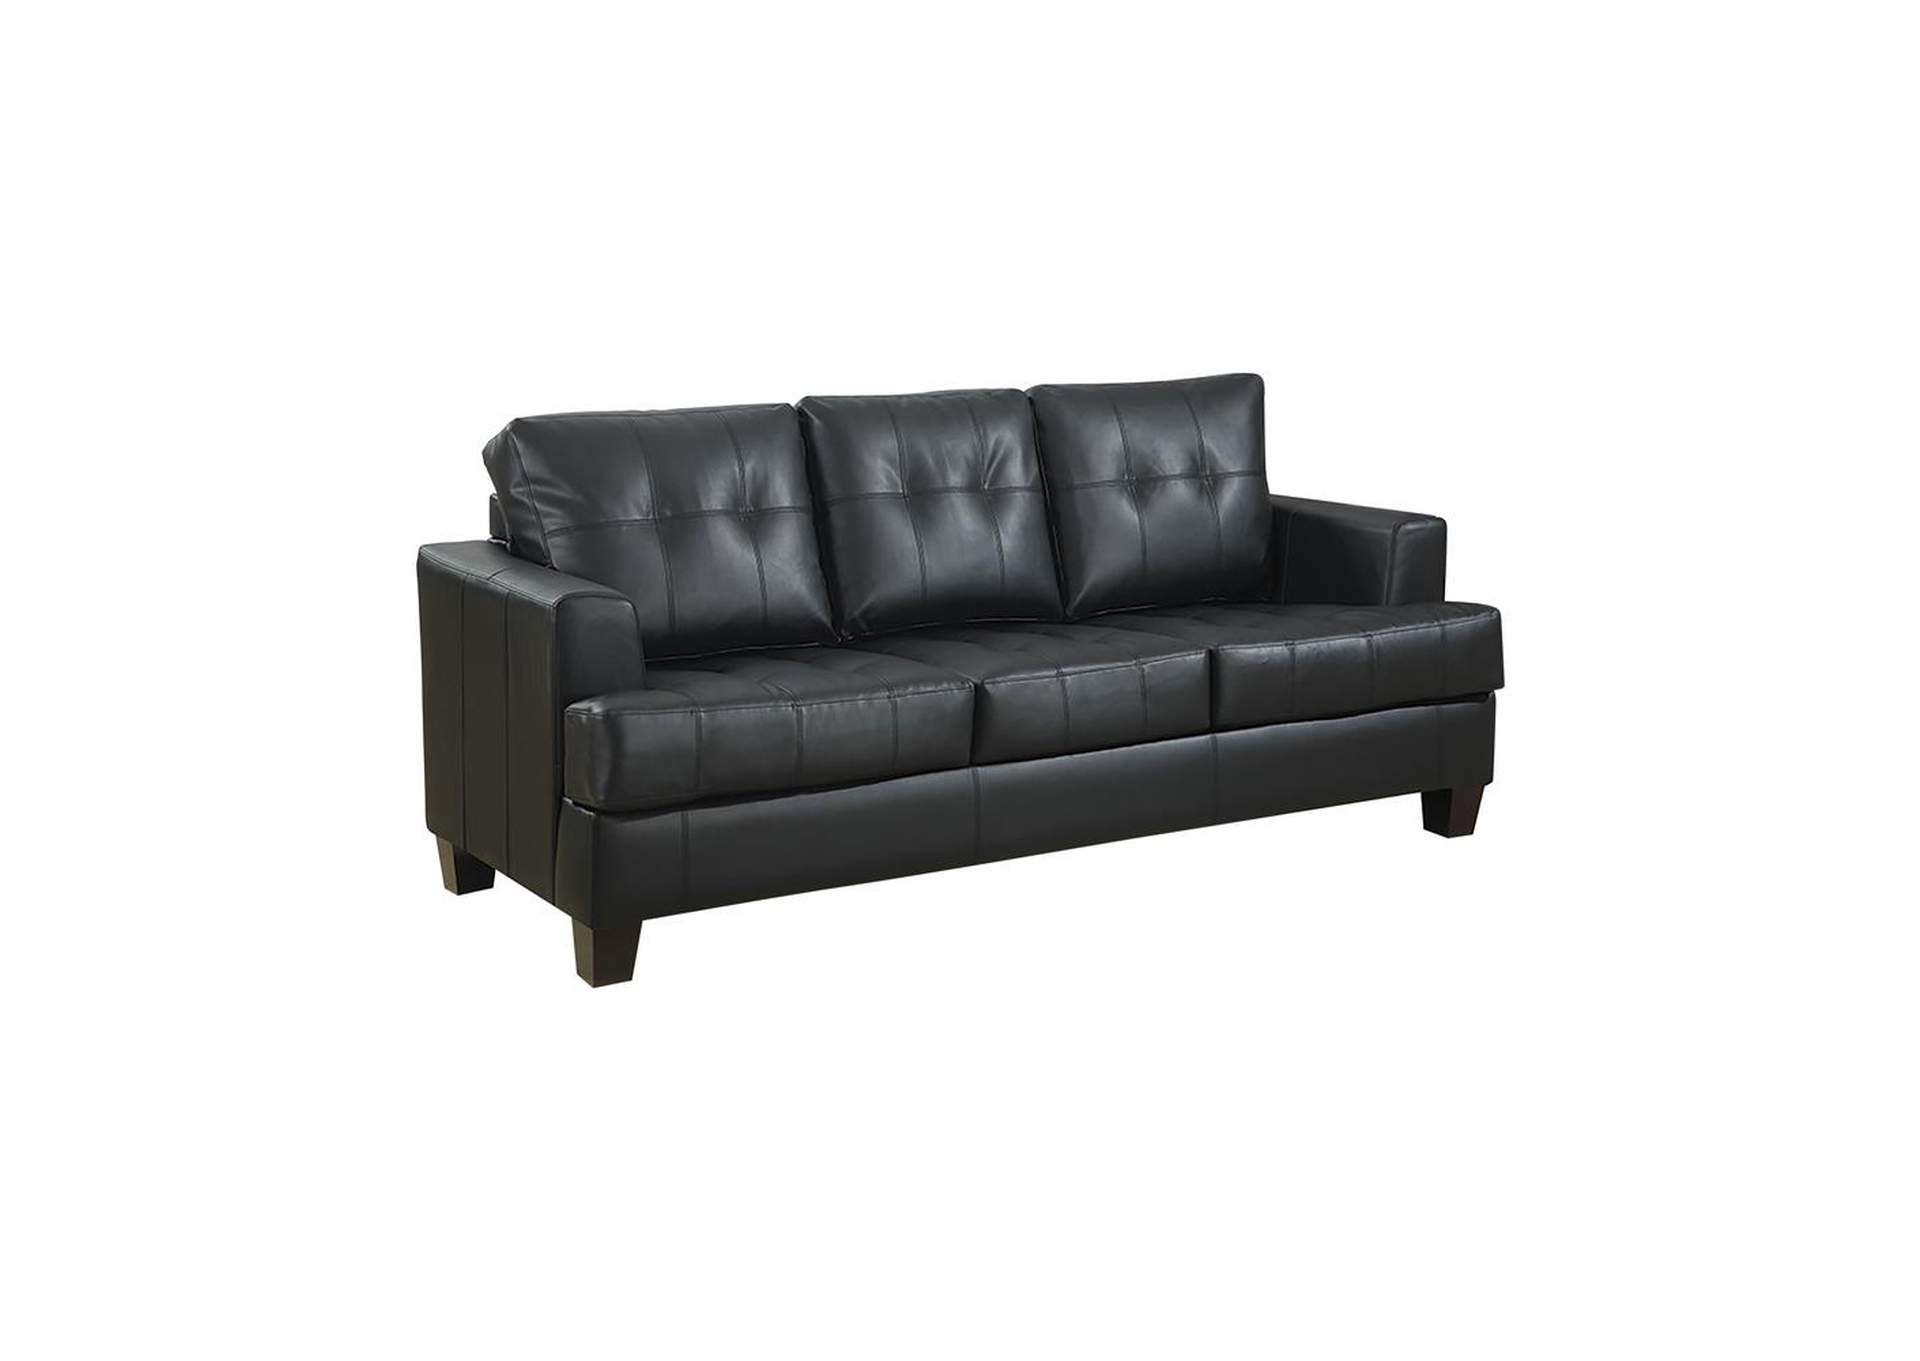 Samuel Sleeper Sofa Black,Coaster Furniture